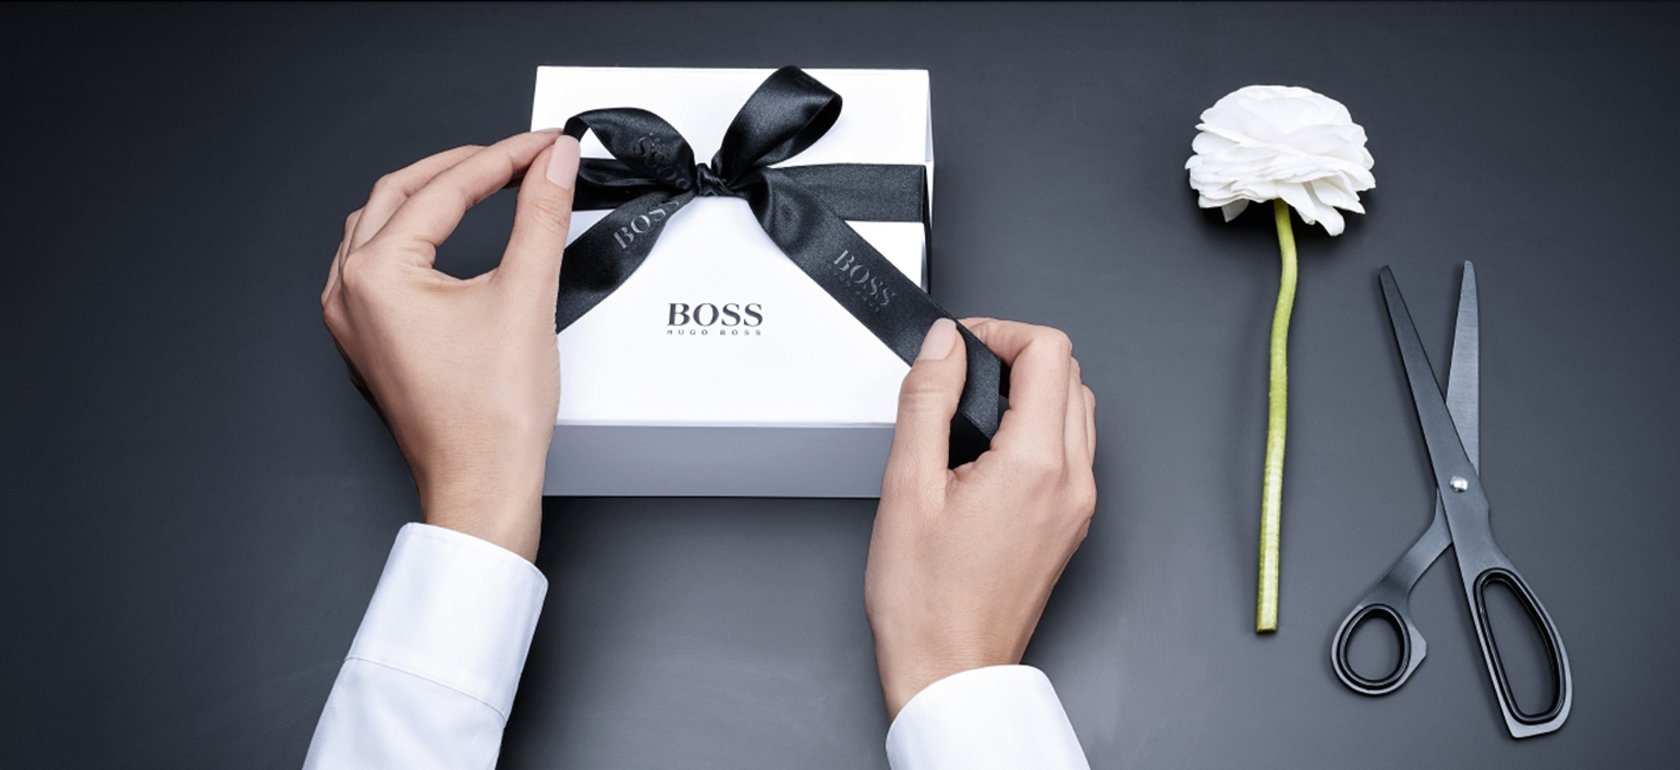 Unwrapping A Welcome Gift By Hugo Boss